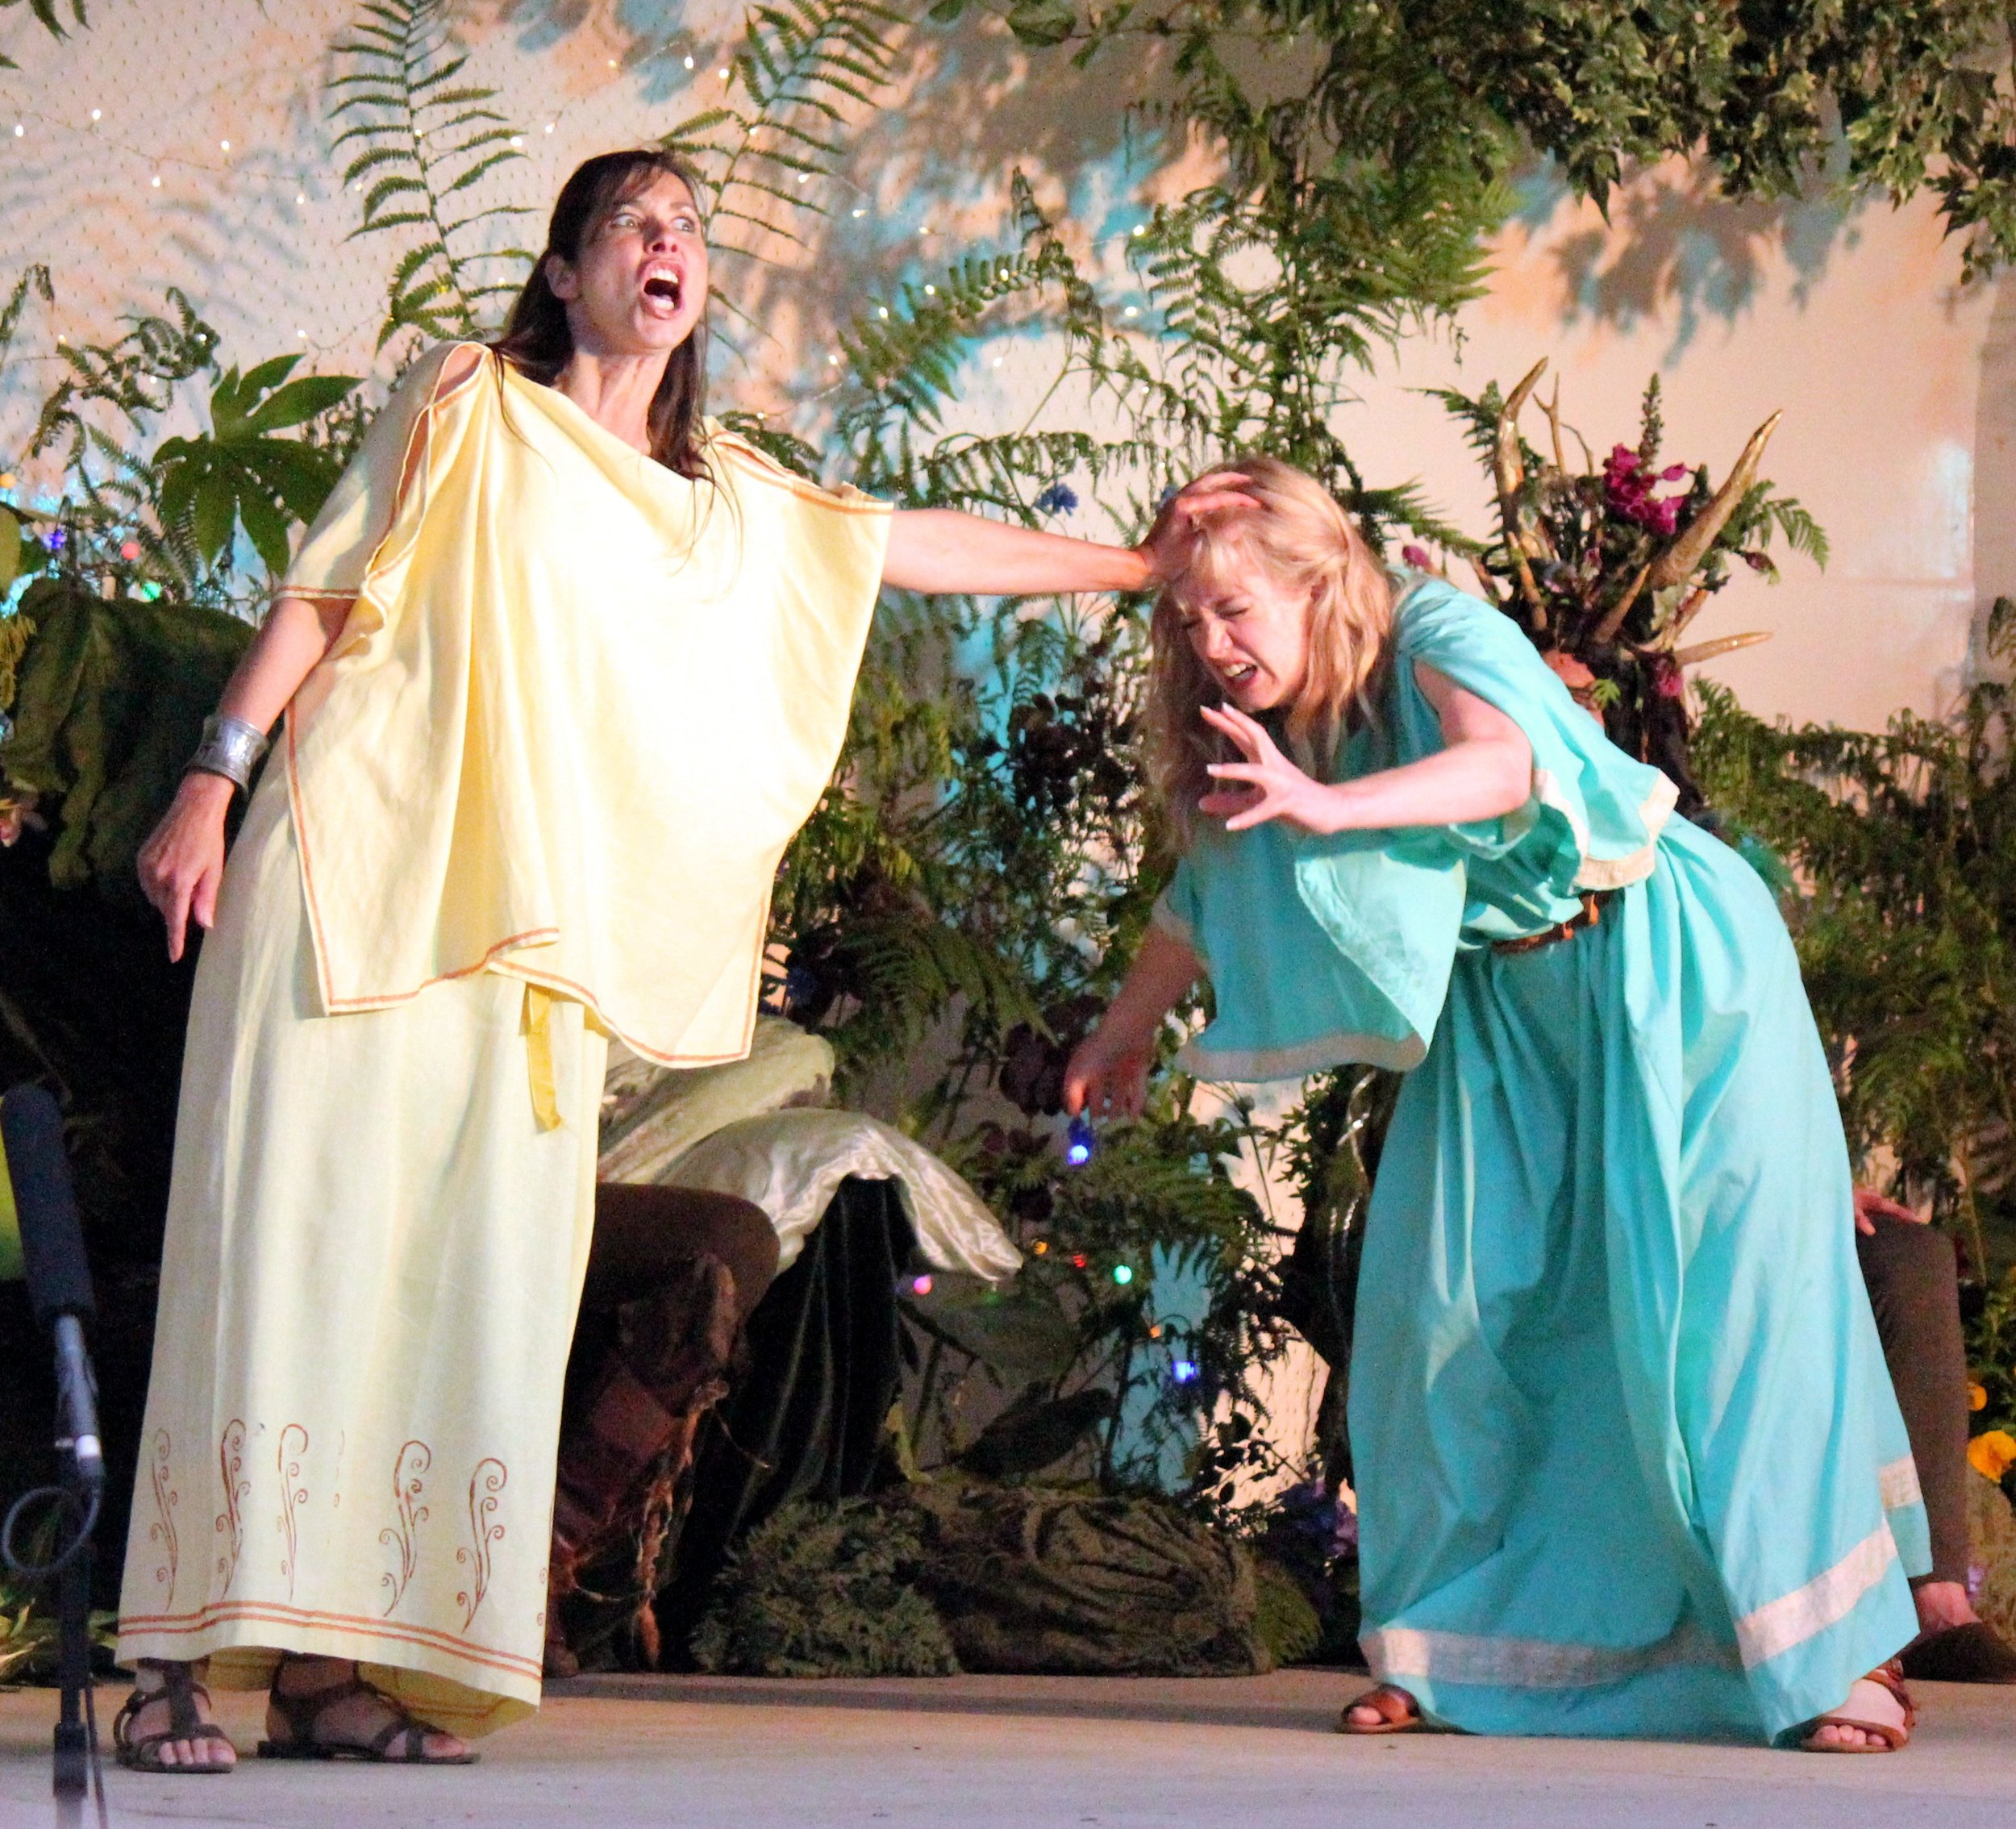 2014; Touring Production – A Midsummer Night's Dream; Max Brandt/Jane Windsor- Smith